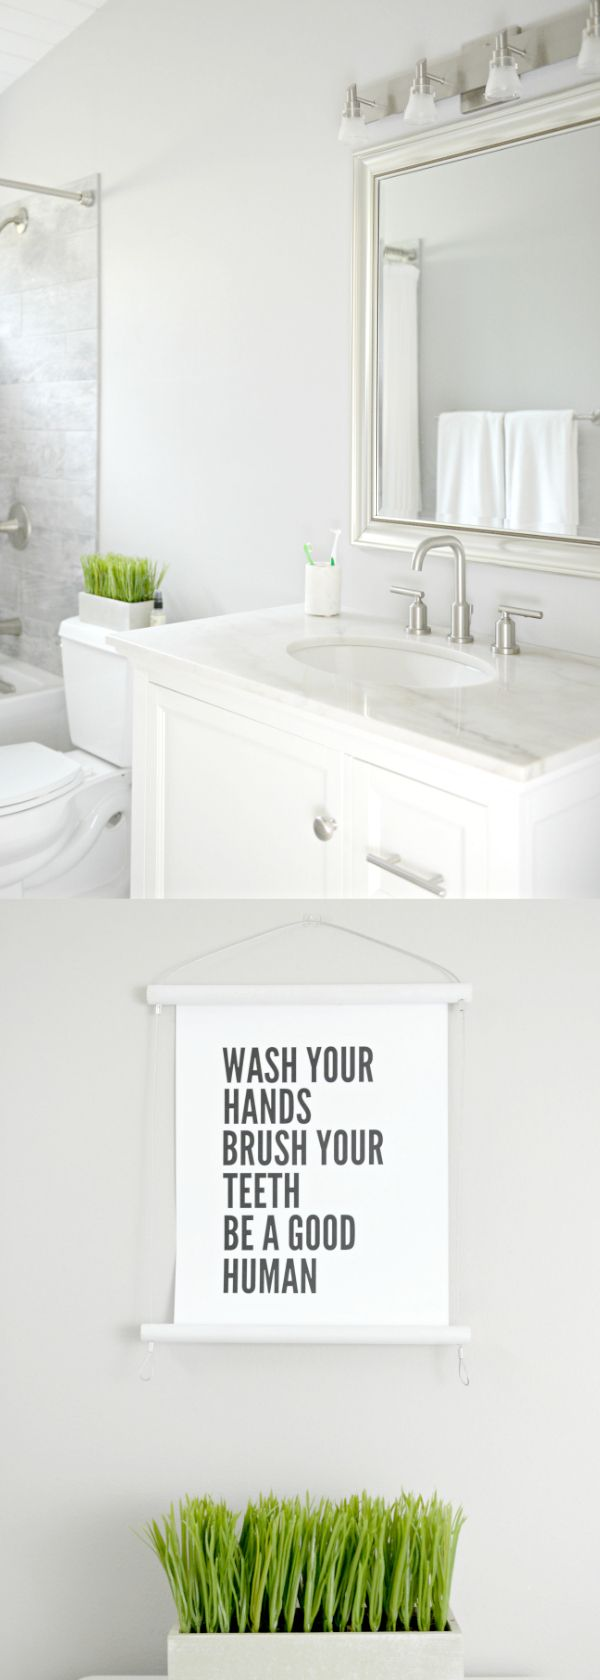 Easy guest and kids shared bathroom update on a budget! See how she swapped and added hardware, used budget friendly lighting and finished it off with a kid friendly printable. AD Bathroom update on a budget - easy budget friendly bathroom updates from Lowe's - Grey and white modern bathroom from Hello Splendid